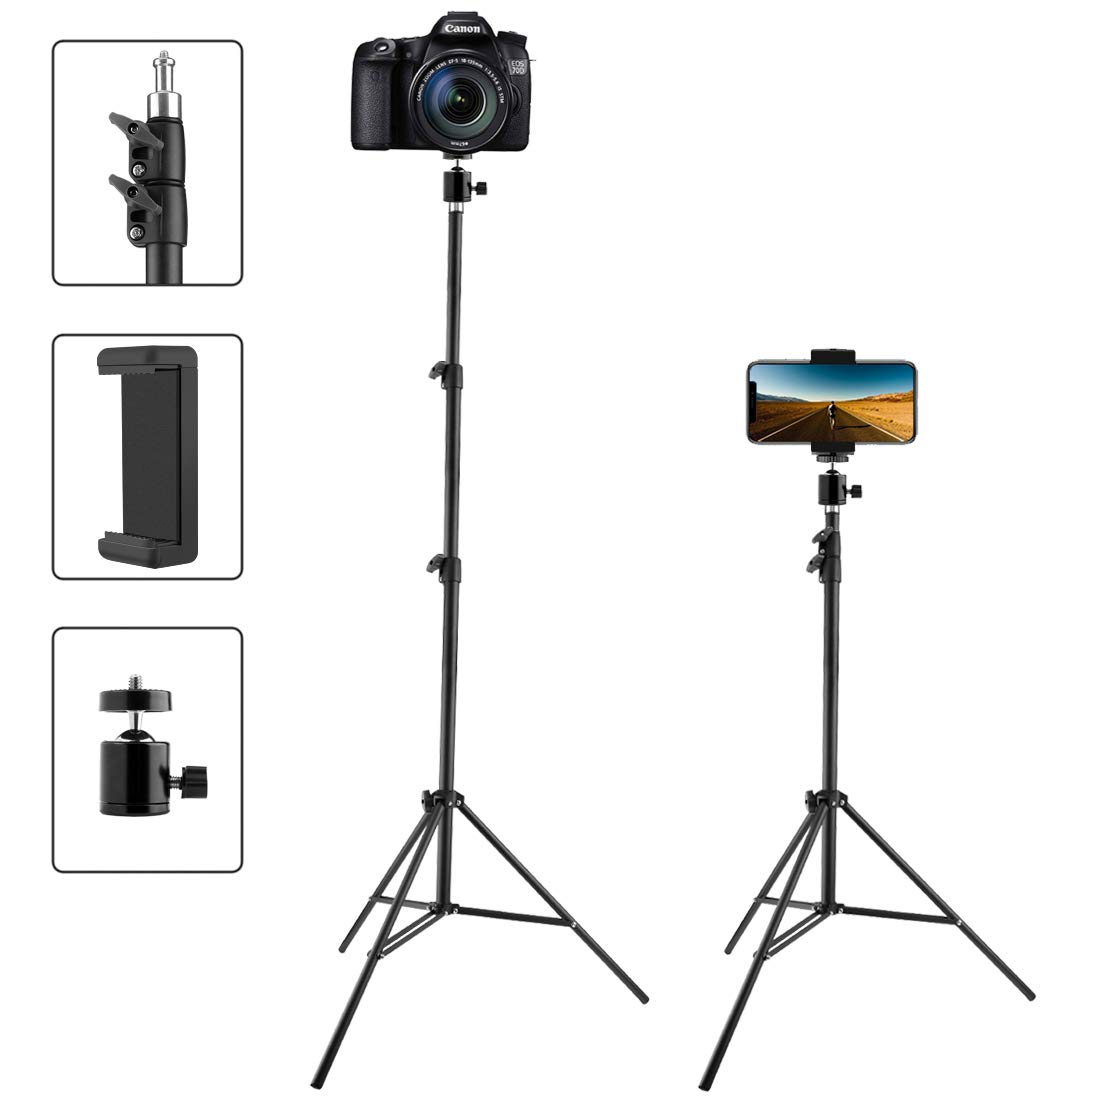 Phone Tripod Tall, Extend to 82 Inch Tripod with Cell Phone Holder, Tall Tripod for Cell Phones, Lightweight DSLRs, Digital Cameras and Action Cameras for Taking Photos and YouTube Videos (82'')